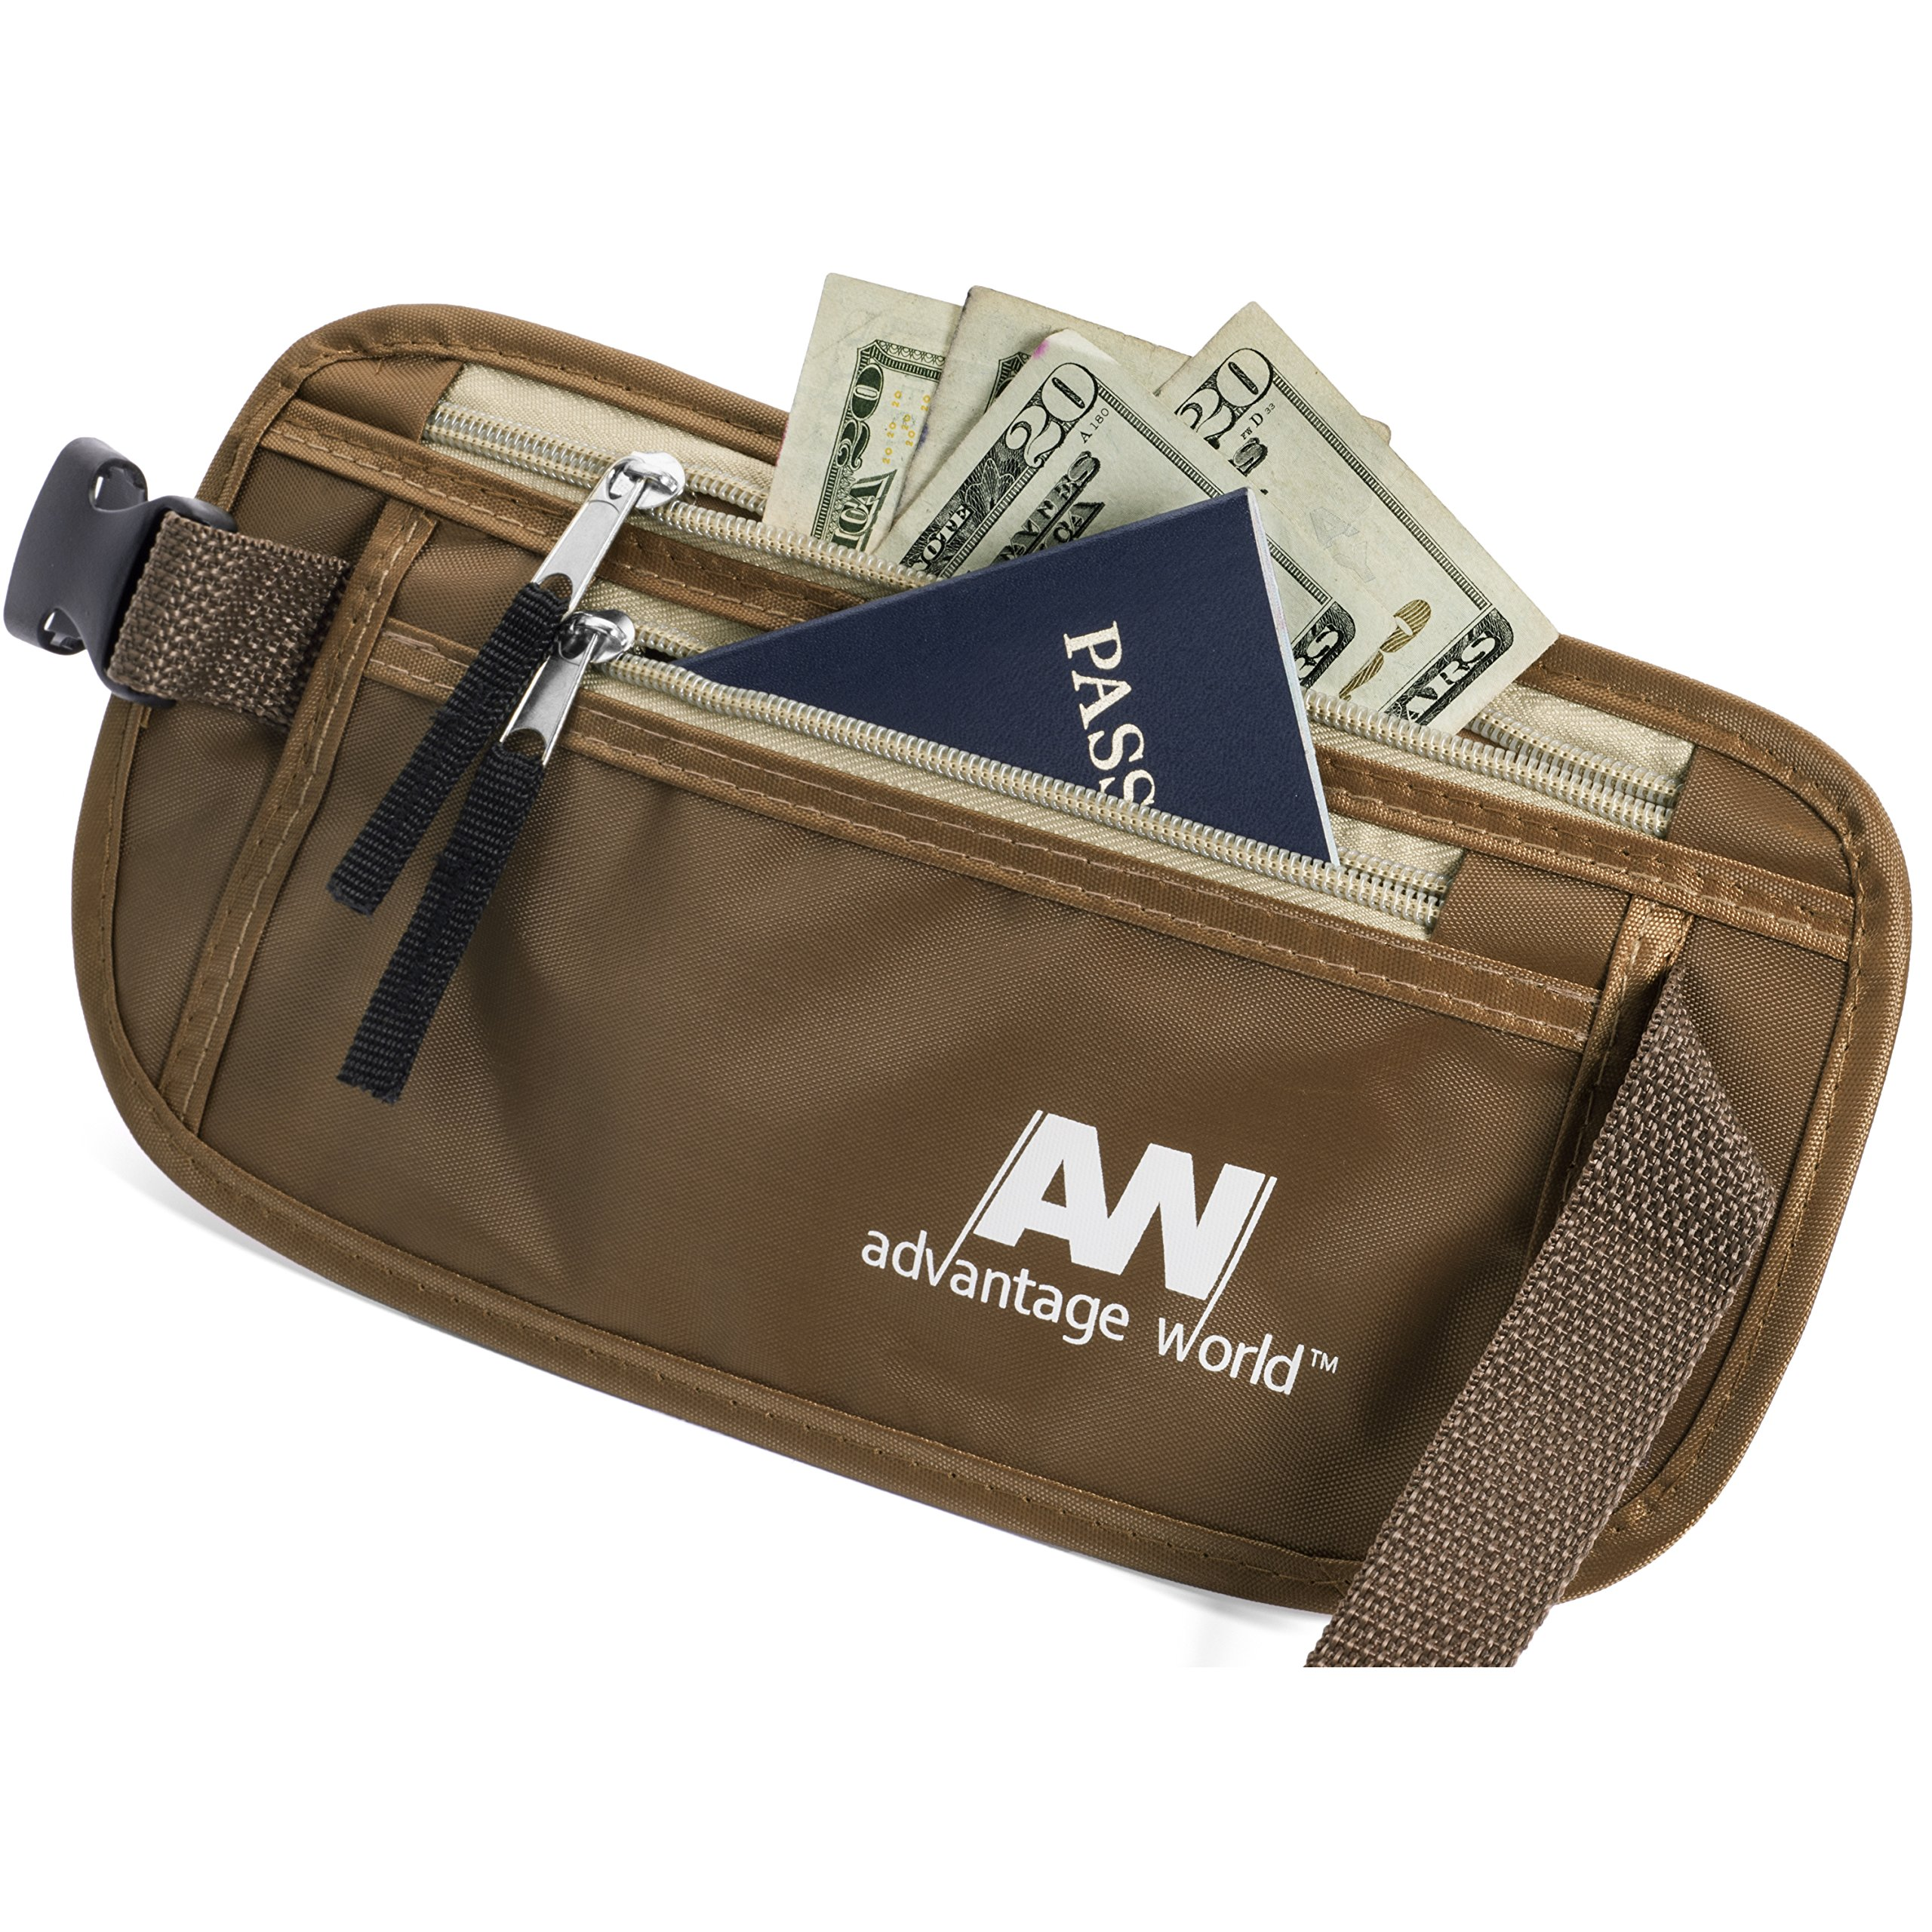 Money Belt for Travel with Security Hidden RFID Waist Pouch. by Advantage World